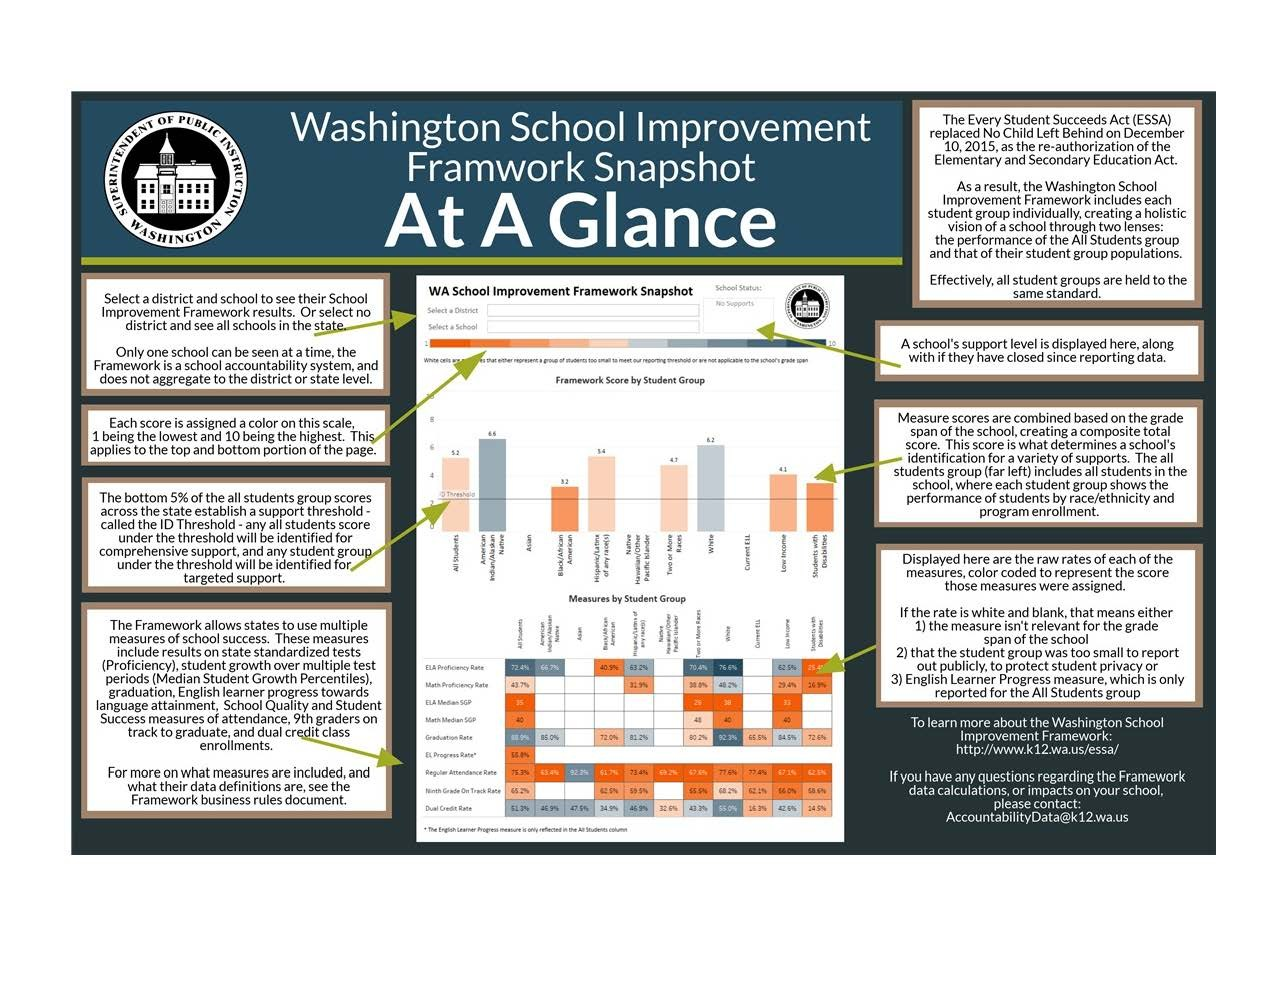 Washington School Improvement Framework At A Glance Flyer showing how to read a school's score.